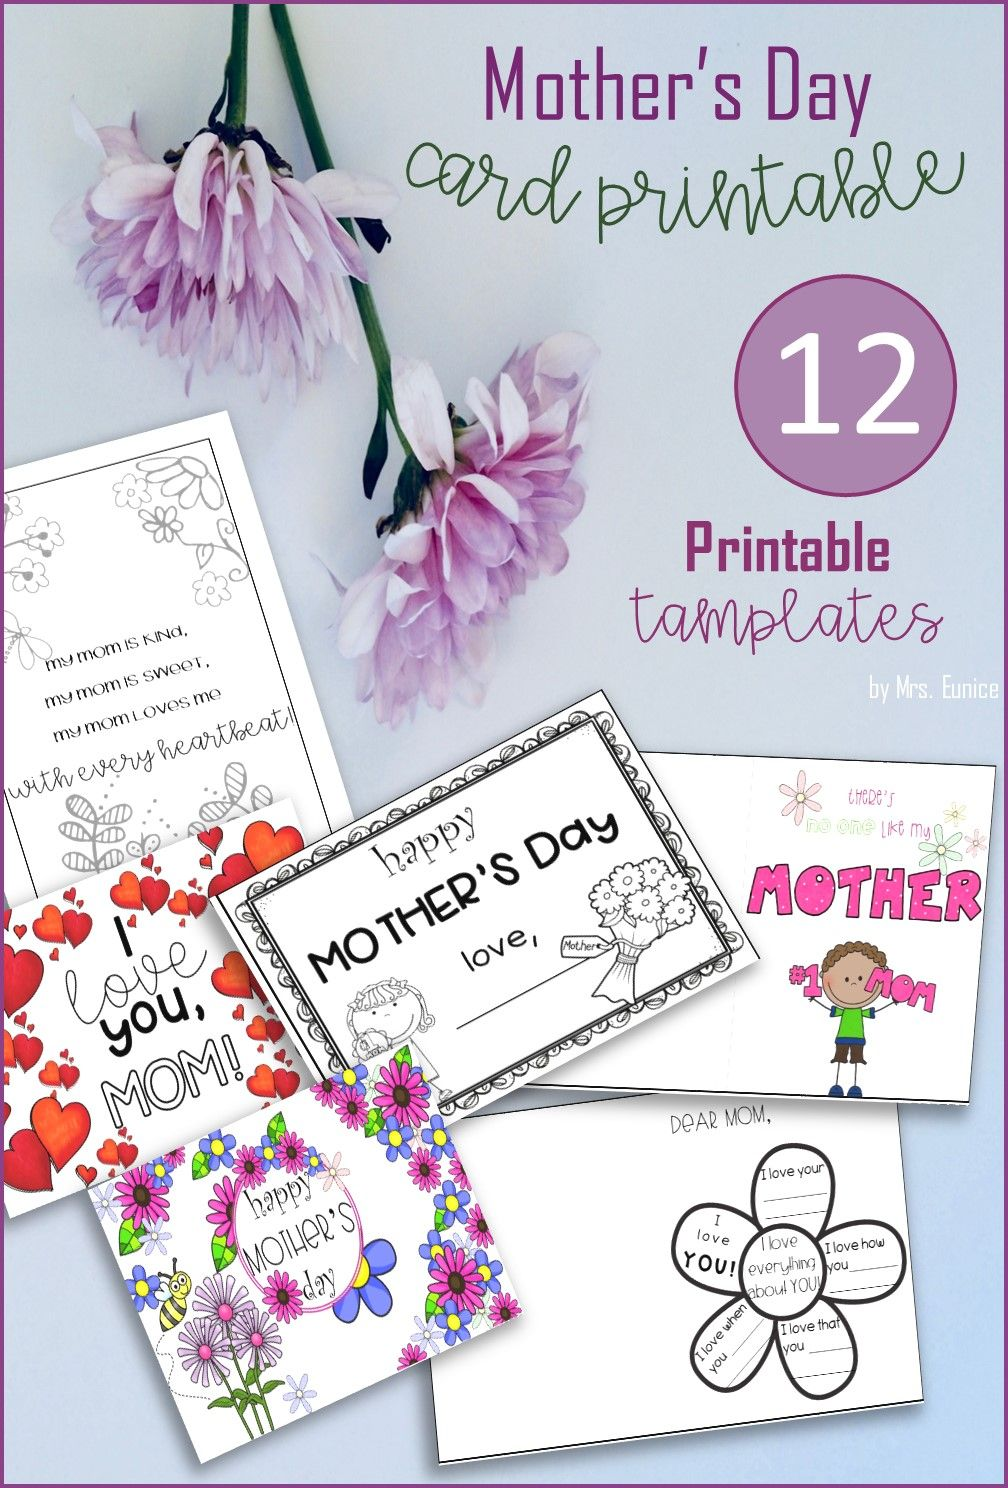 Editable Mother S Day Cards Printable Templates Mothers Day Cards Printable Mothers Day Card Template Mothers Day Cards